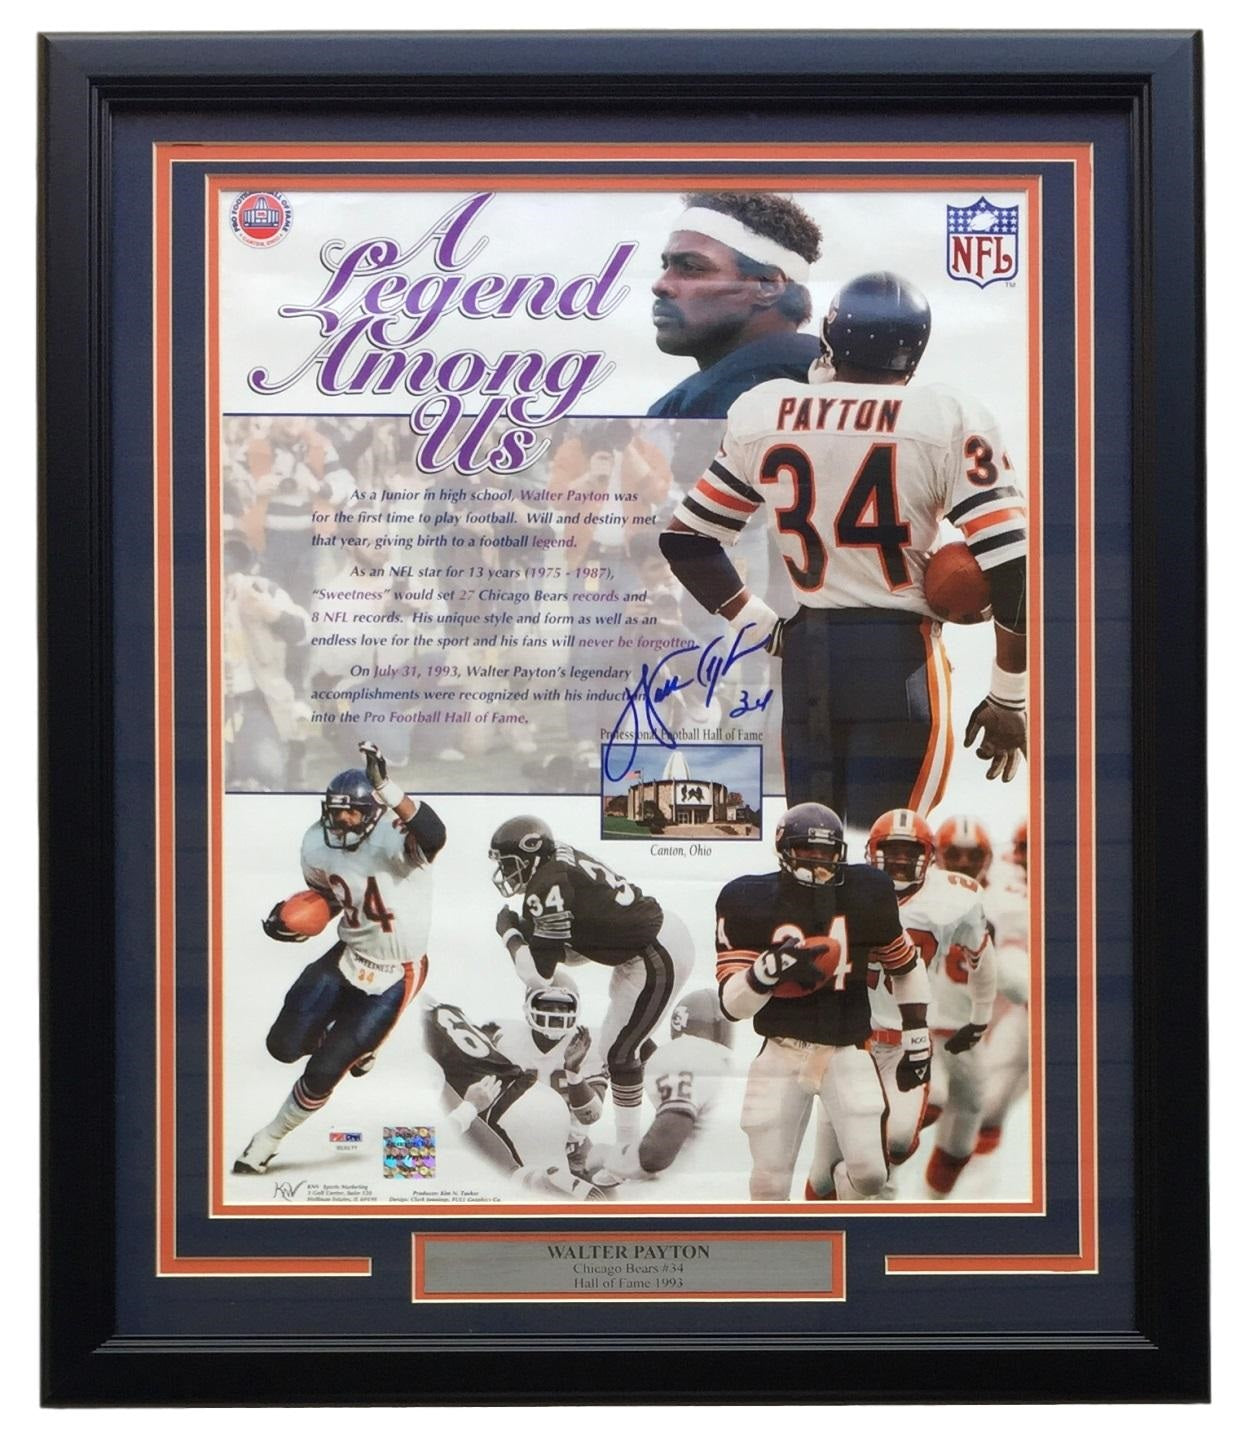 Walter Payton Chicago Bears Signed Framed 16x20 Legend Among US Photo PSA LOA PSM-Powers Sports Memorabilia